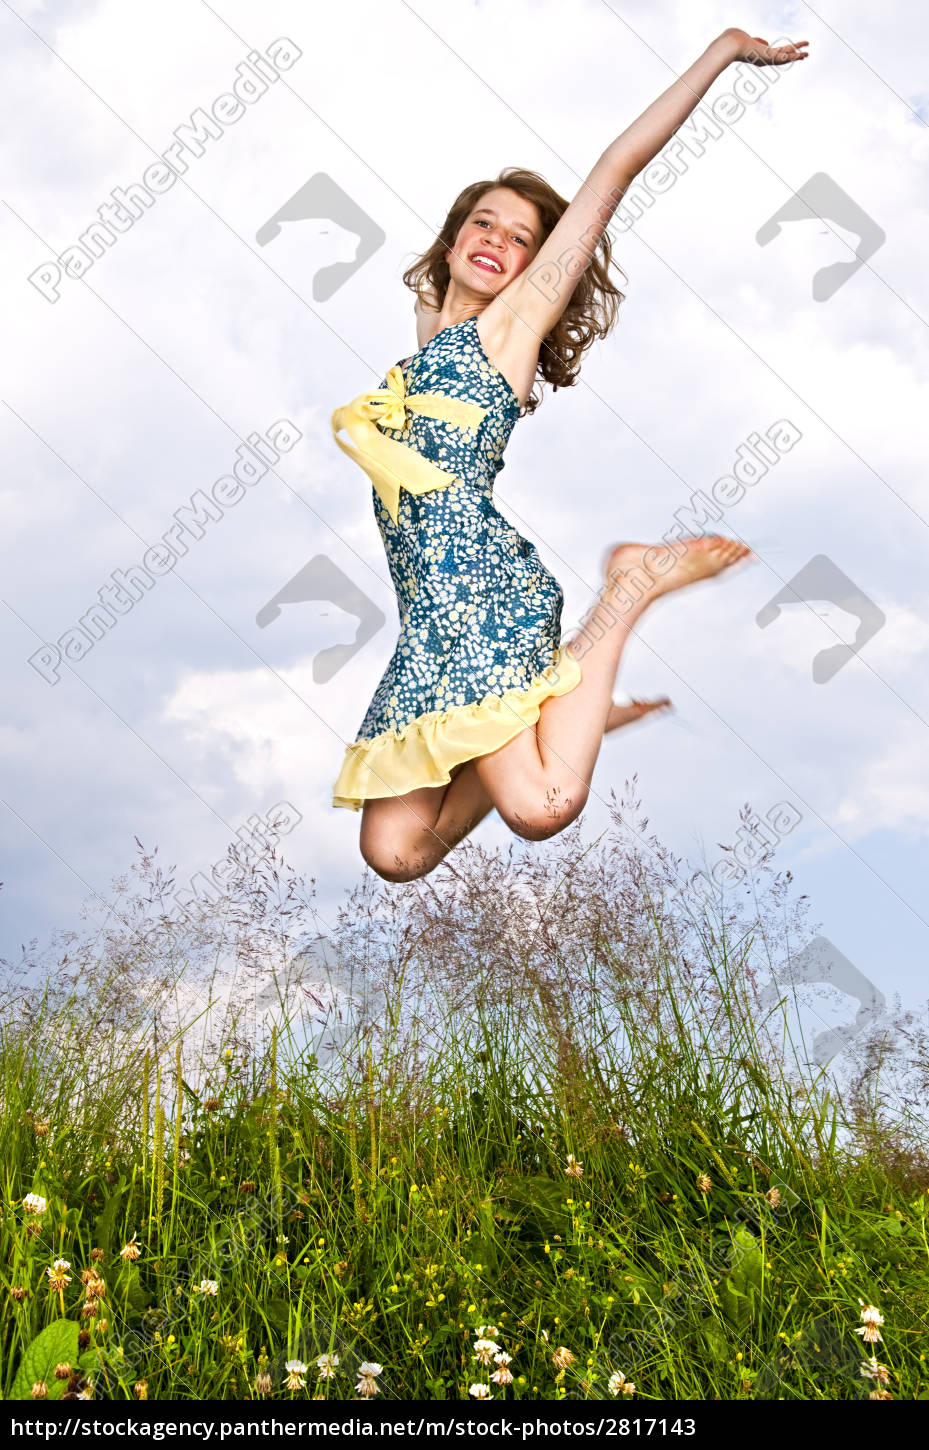 summer, summerly, spring, bouncing, bounces, hop - 2817143